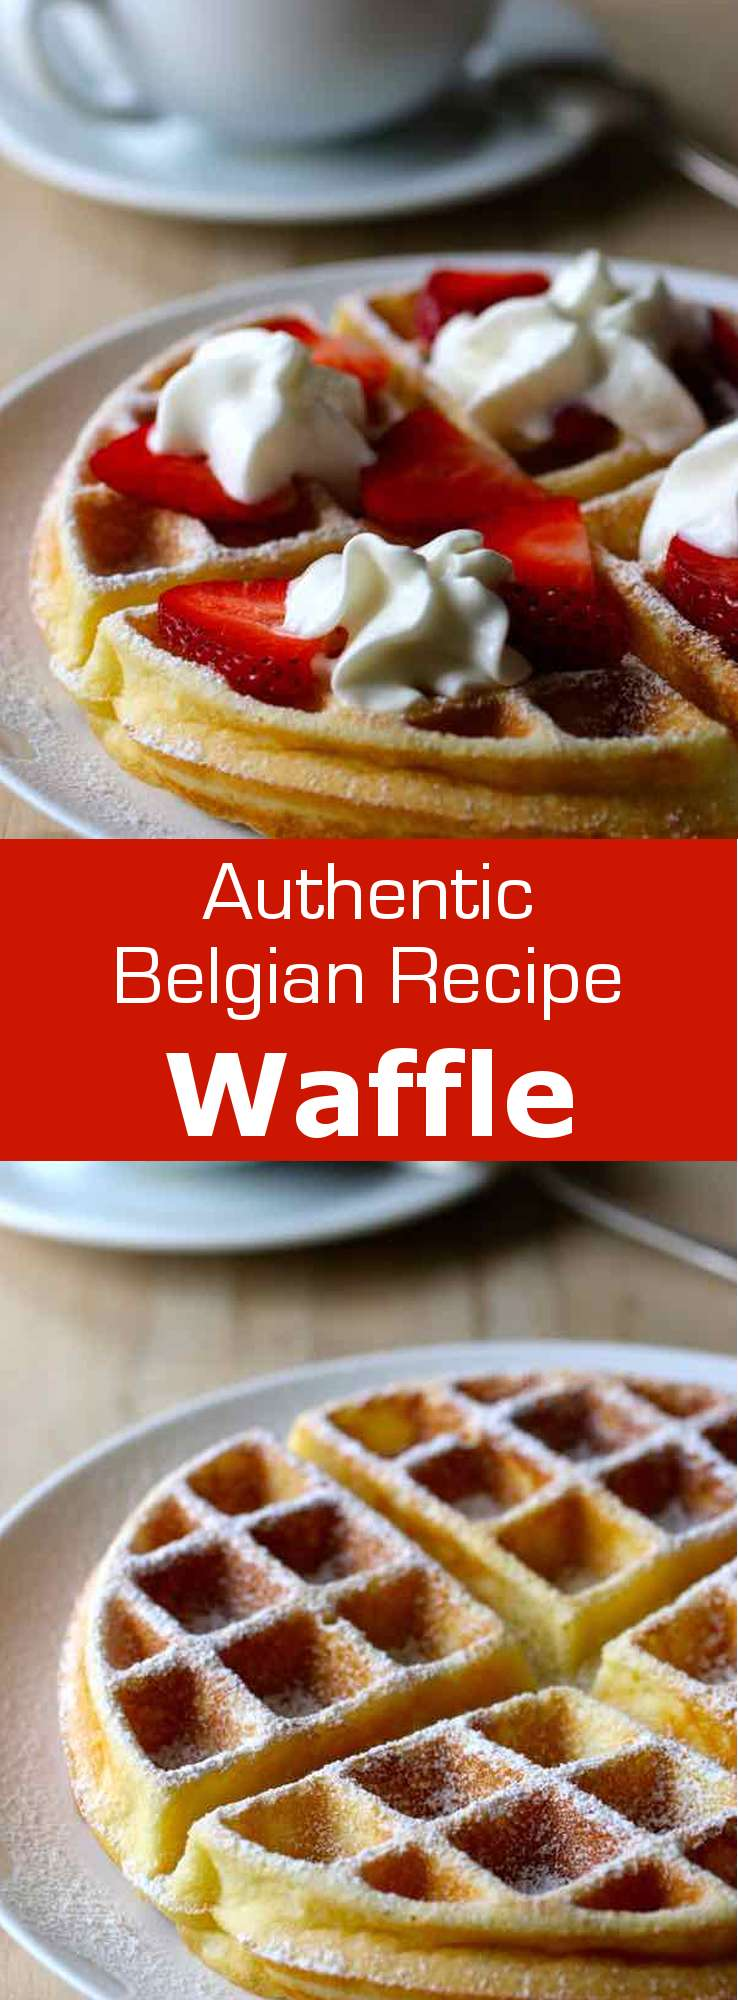 A waffle is a small crisp batter cake, originally from Belgium, that is traditionally baked between two iron plates with various patterns. #Belgian #Belgium #BelgianDessert #BelgianCuisine #BelgianRecipe #WorldCuisine #196flavors